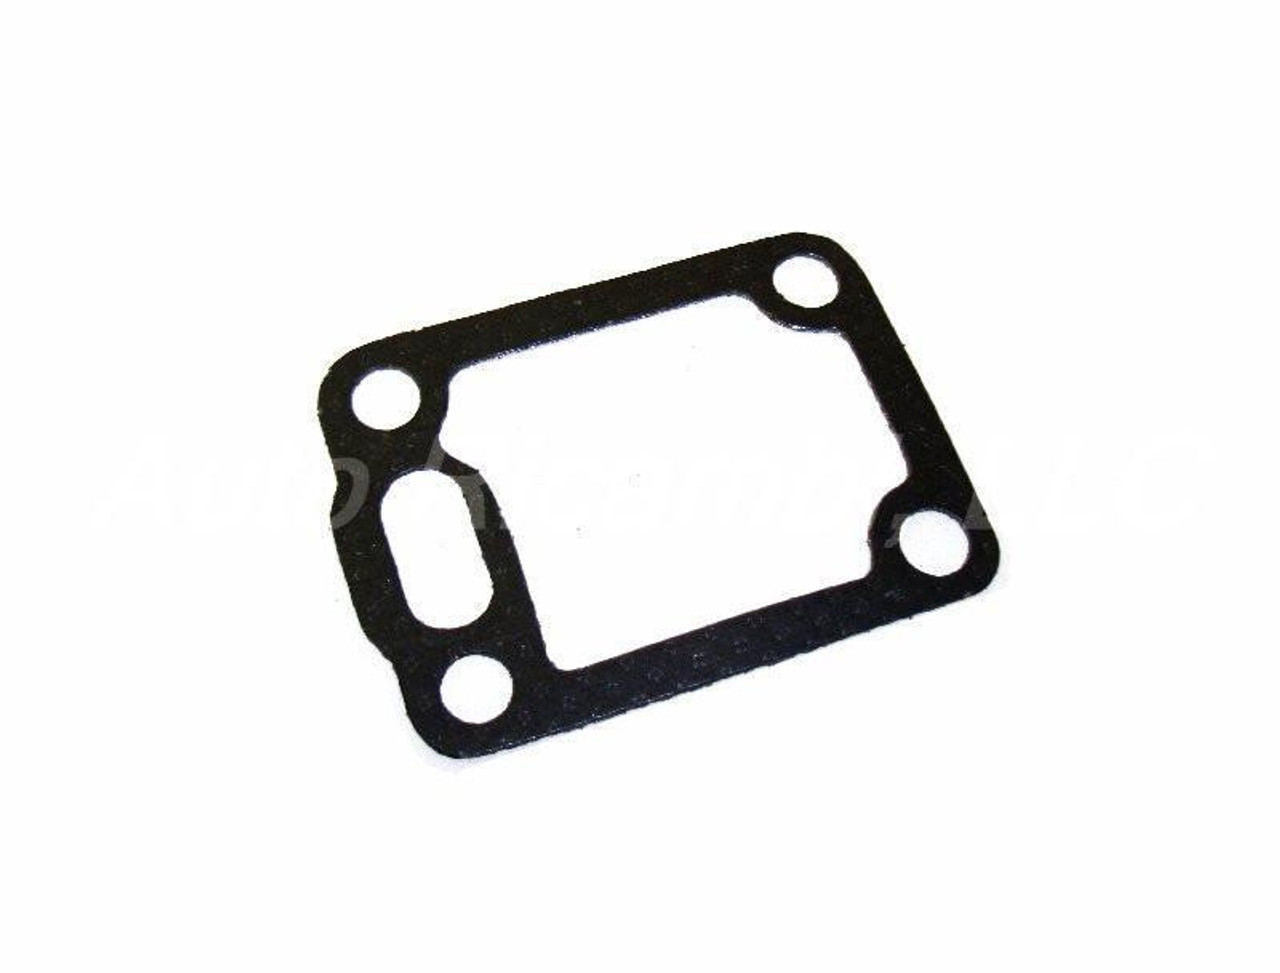 Oil Filter Housing Gasket - 1978-85